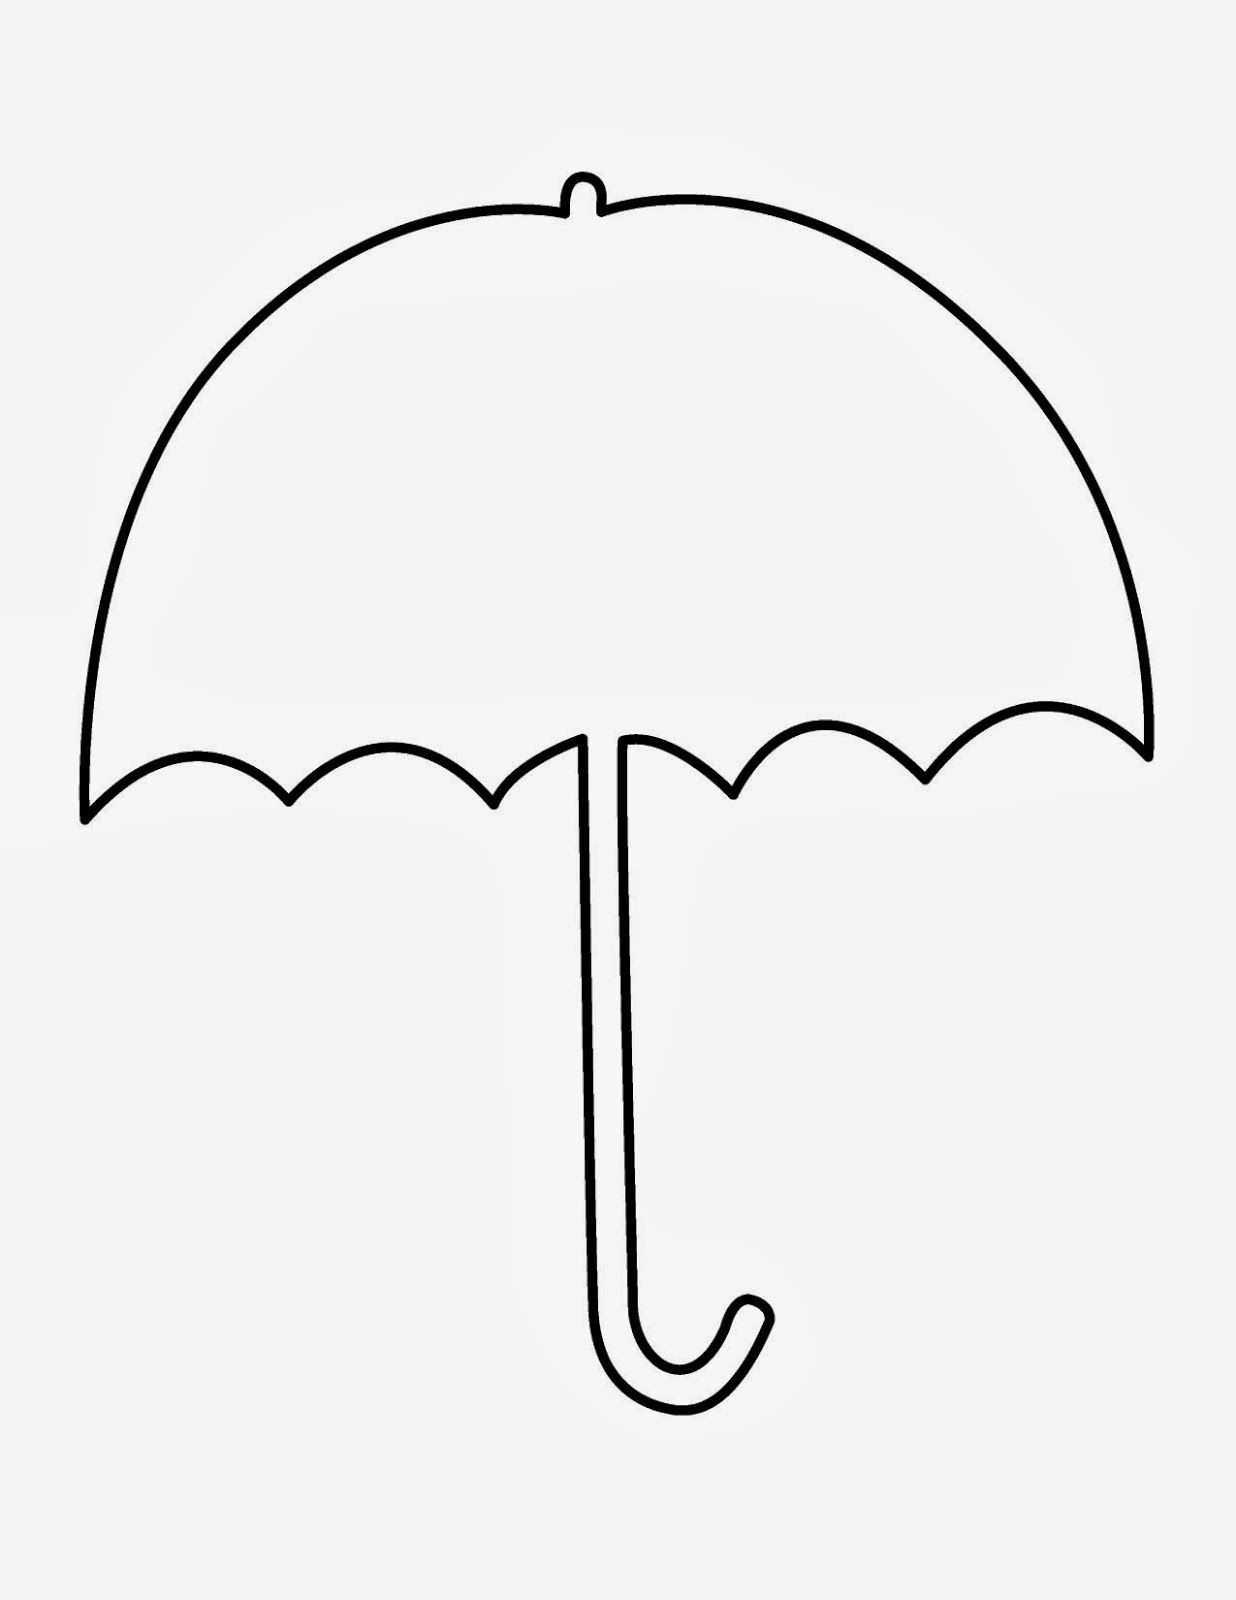 Umbrella clipart printable. Clip art to match